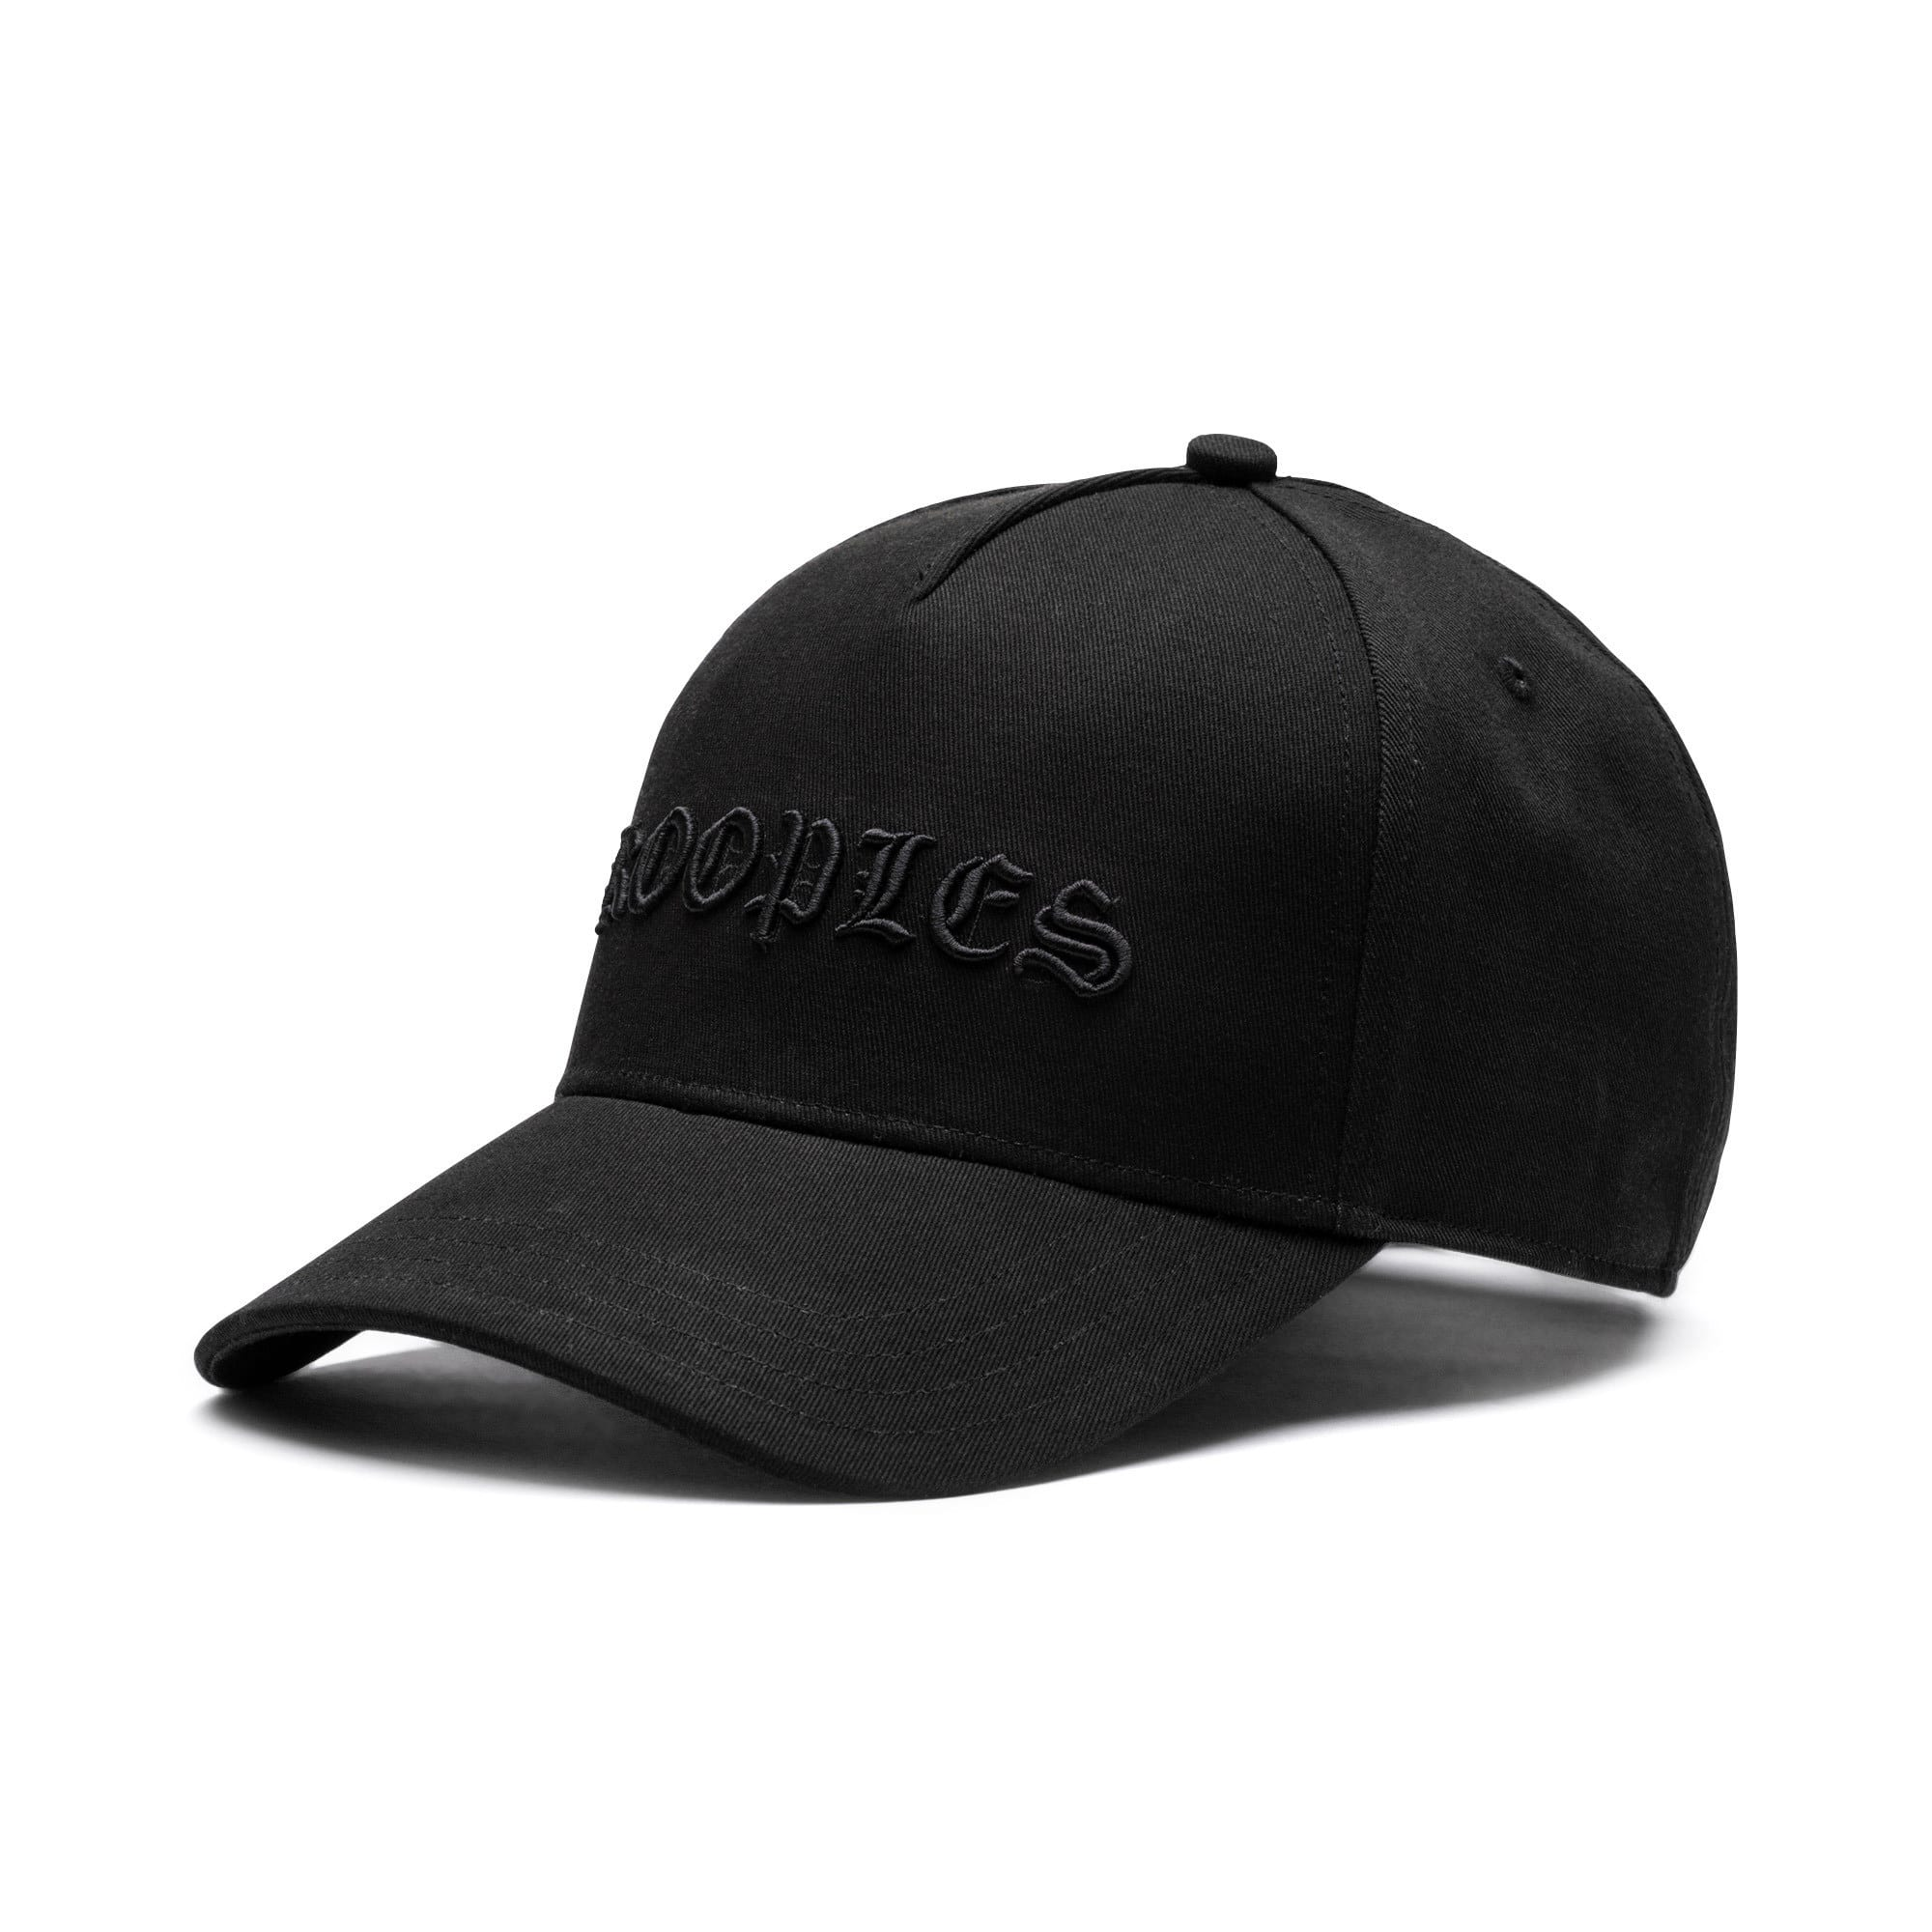 Thumbnail 1 of PUMA x THE KOOPLES Baseball Cap, Puma Black, medium